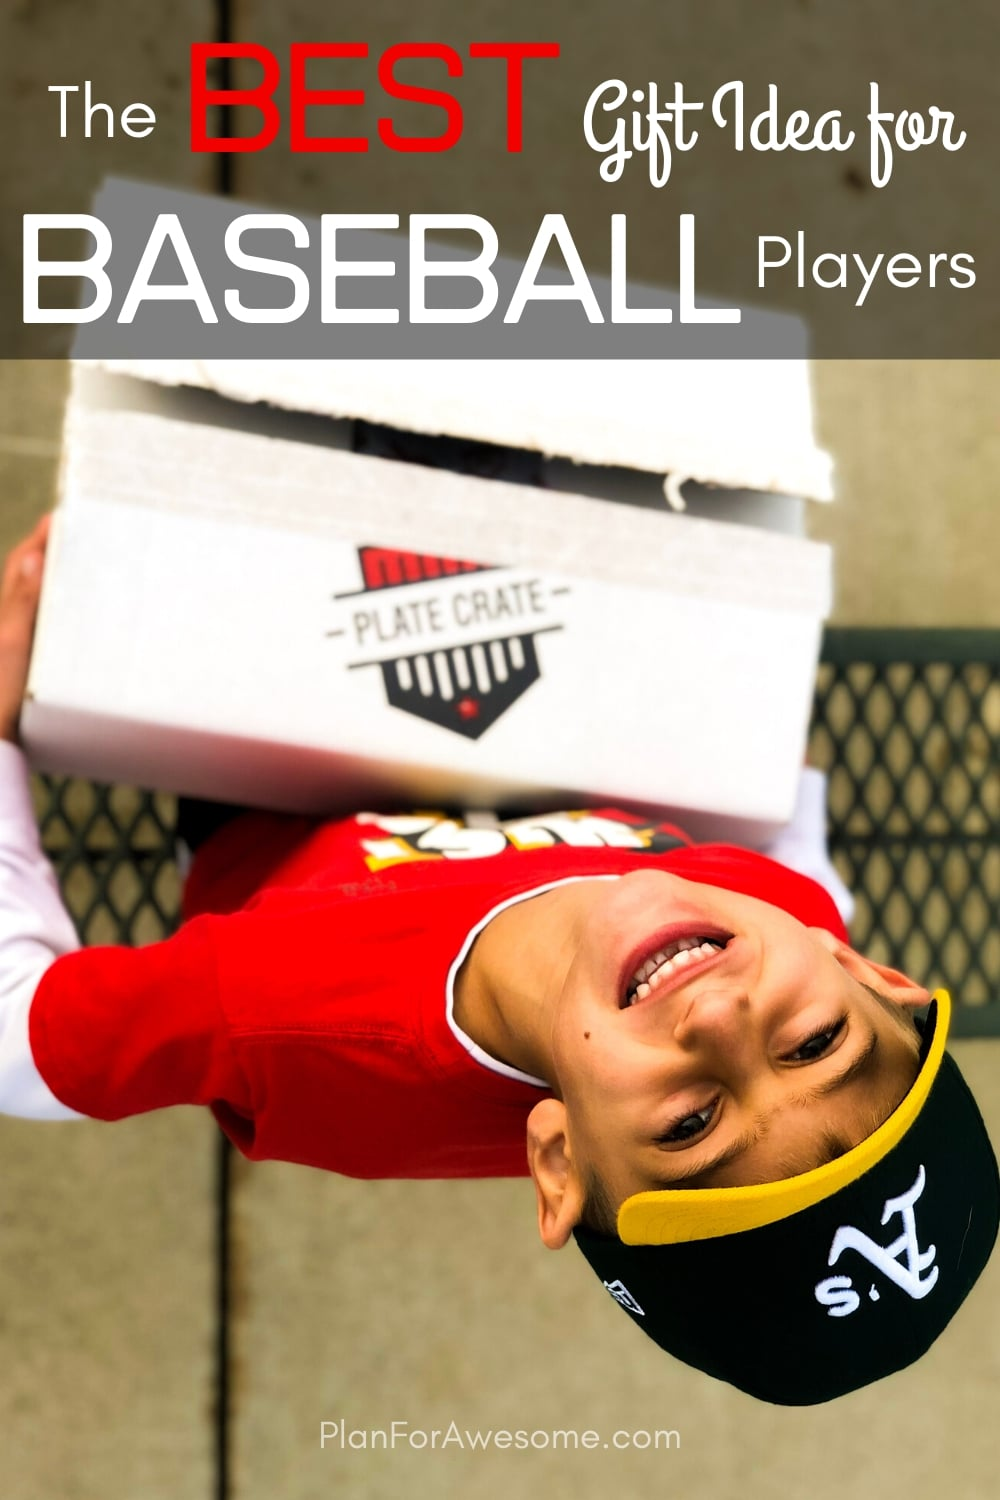 The BEST GIFT EVER for Baseball Lovers (plus a $20 off coupon) - This is seriously the coolest and the easiest gift idea for baseball lovers and players!  A surprise box full of baseball gear, apparel, training aids, accessories, and snacks - I just ordered one for my little guy!  #baseballgiftideas #baseballmom